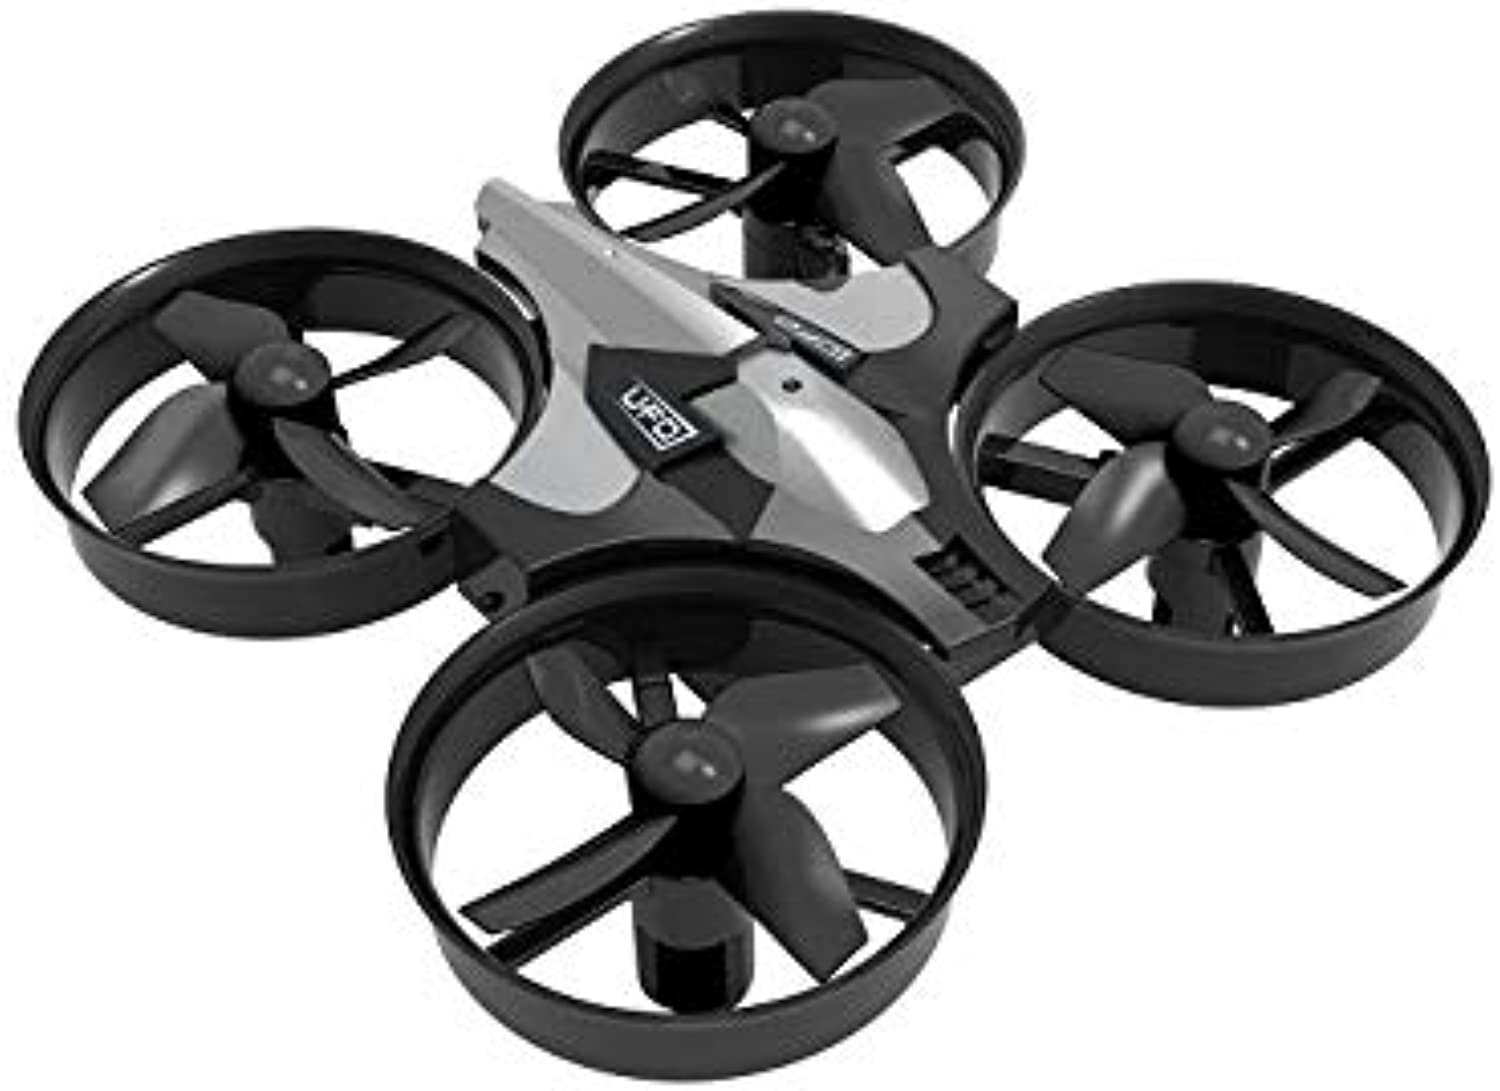 Generic Newest 2.4G Mini Foldable Drone RC Helicopter Quadcopter Drone Headless Mode One Key Return RC Tiny Gift Present Kid Toys Black